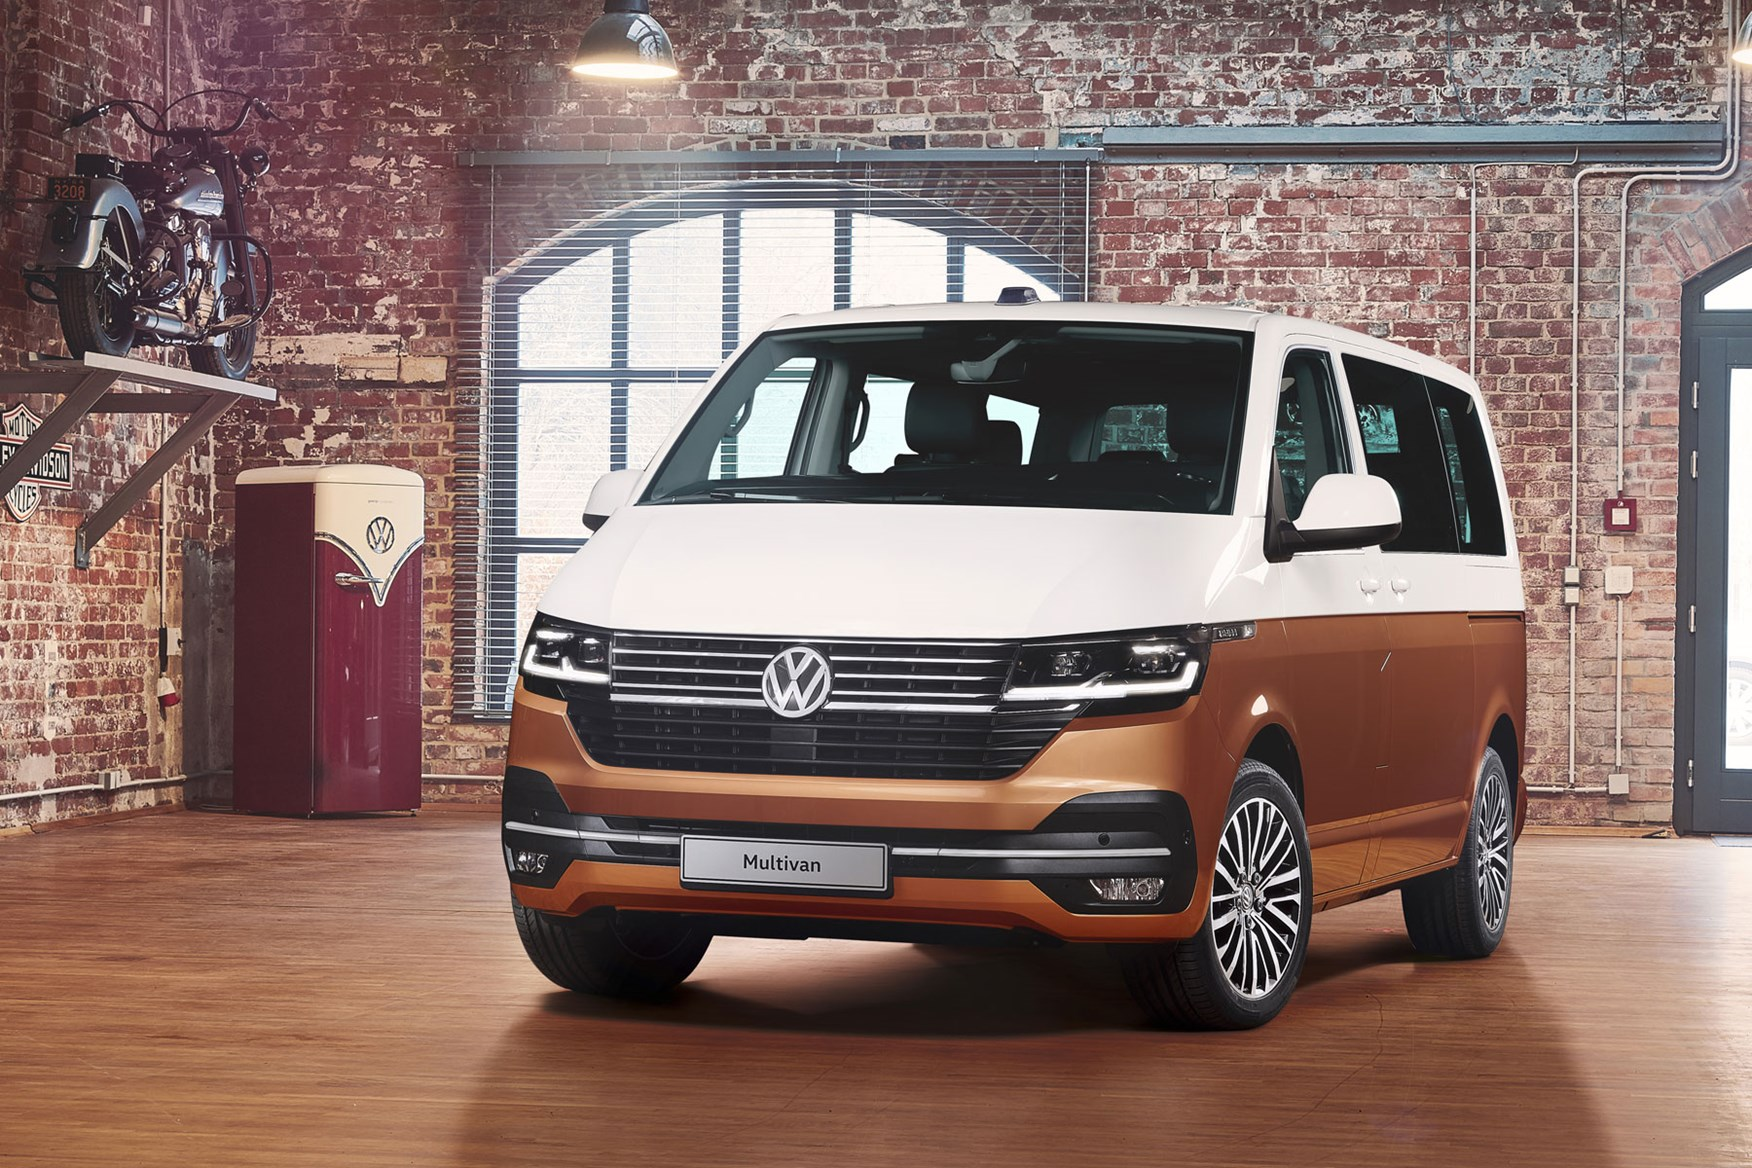 bc4b1d2388 Volkswagen Transporter T6.1 officially revealed – full details and ...